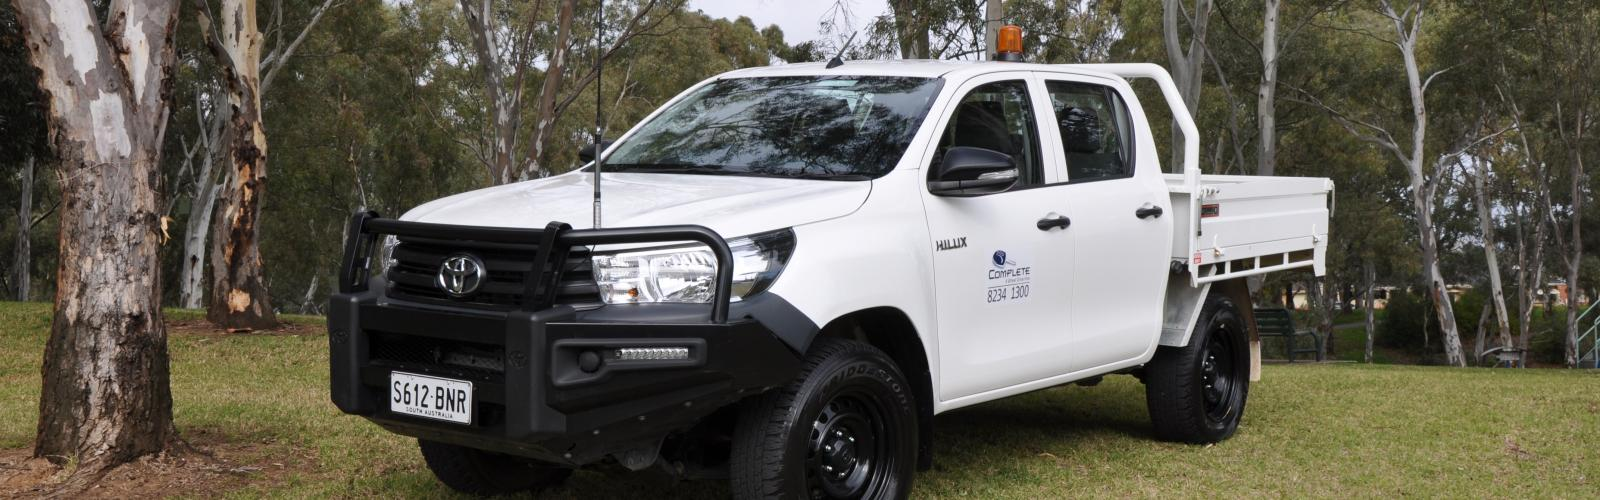 4WD Toyota Hilux Dual Cab Tray 2020